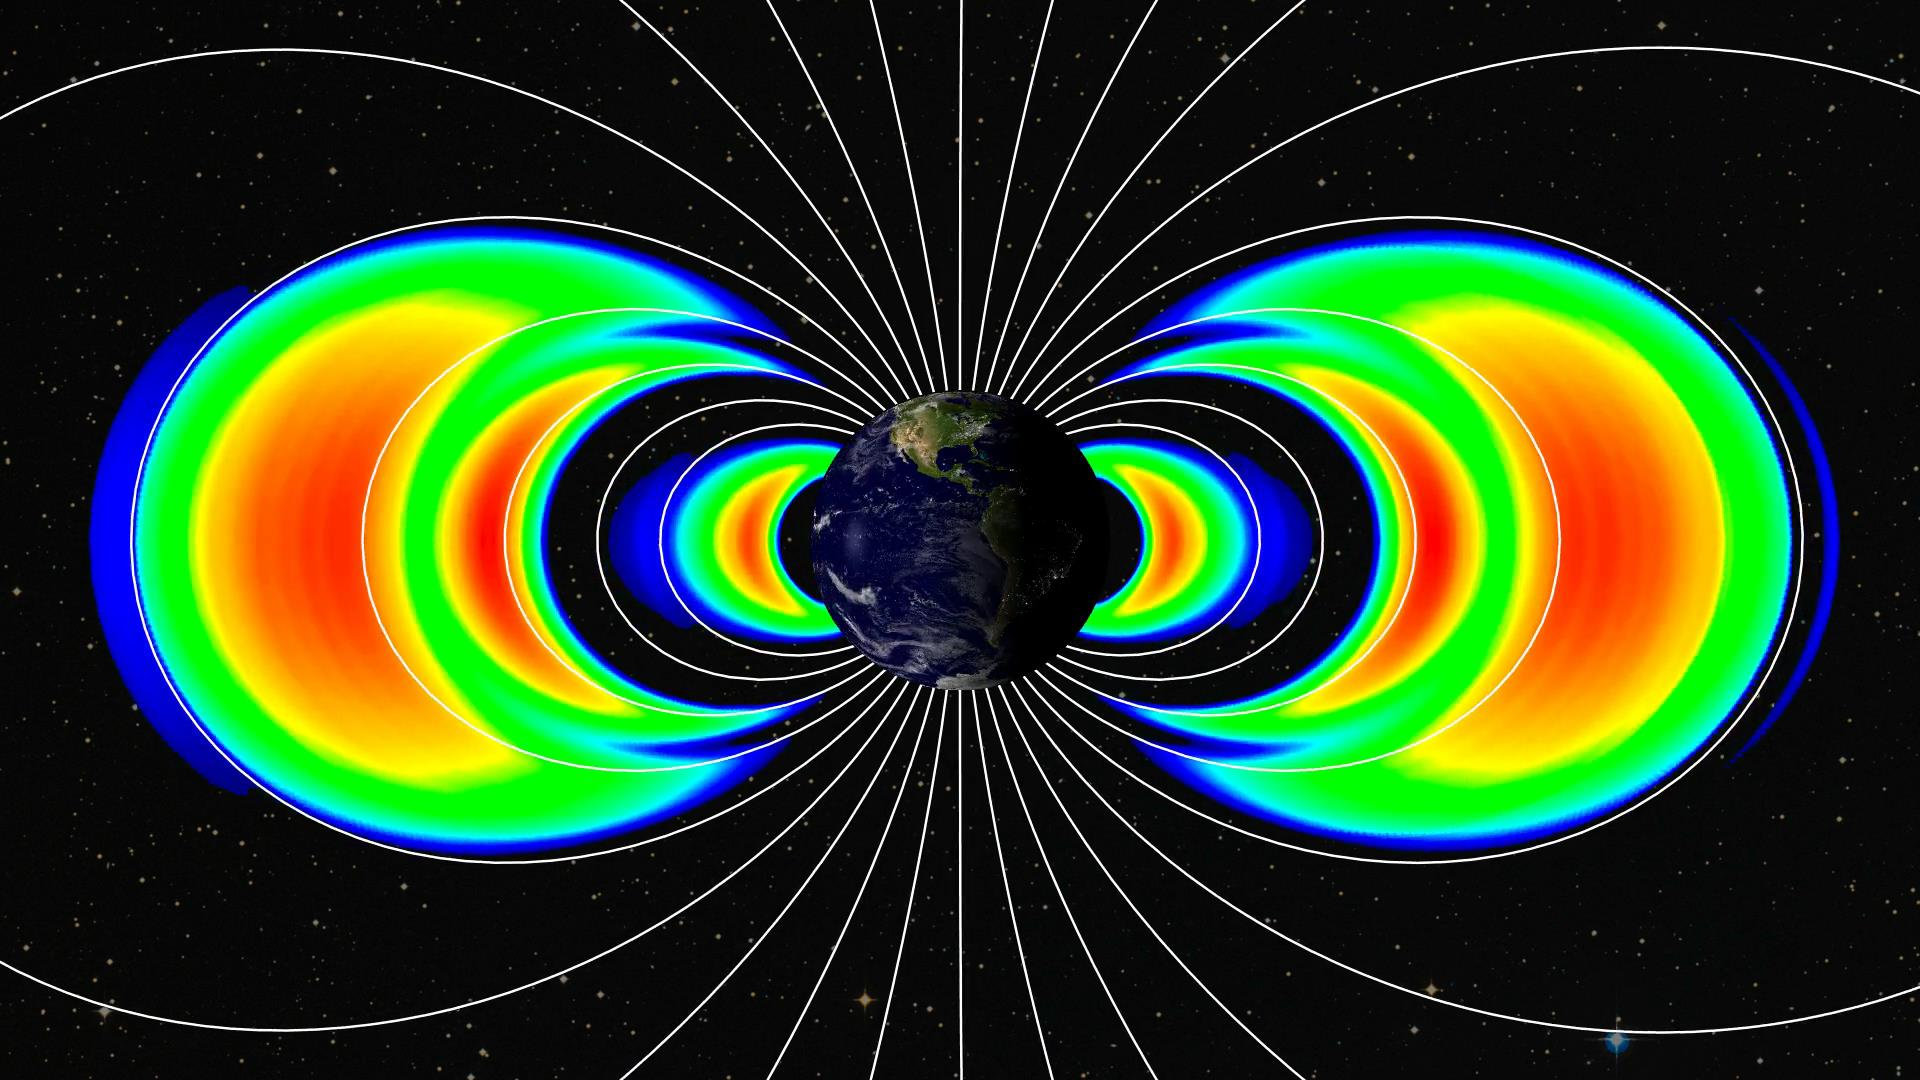 This image was created using data from the Relativistic Electron-Proton Telescopes on NASA's twin Van Allen Probes. It shows the emergence of a new third transient radiation belt. The new belt is seen as the middle orange and red arc of the three seen on each side of the Earth. Image Credit: APL, NASA